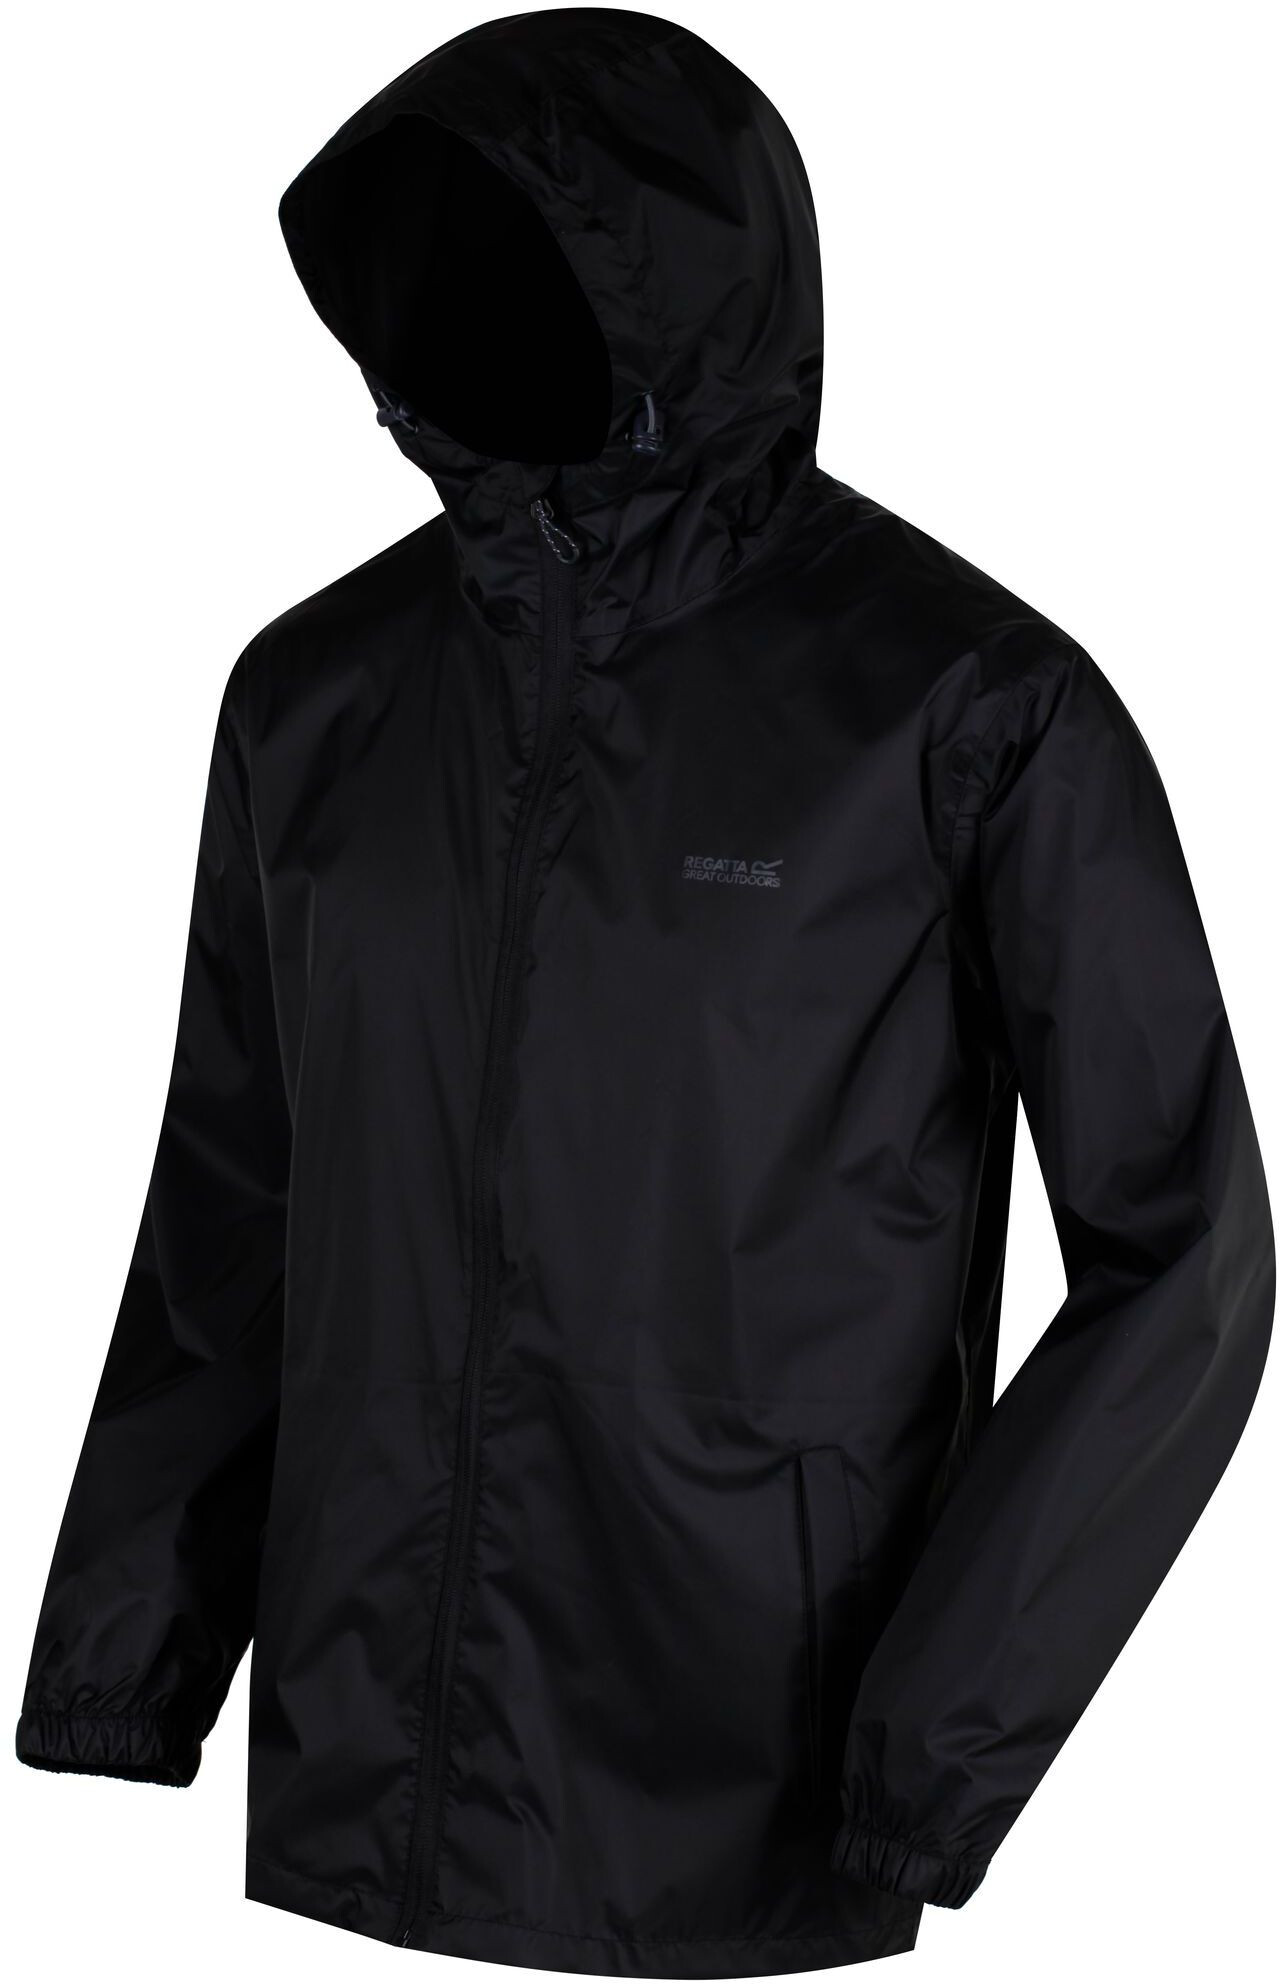 faa1d47f751a50 Regatta Pack It III Jacket Herren black | campz.de